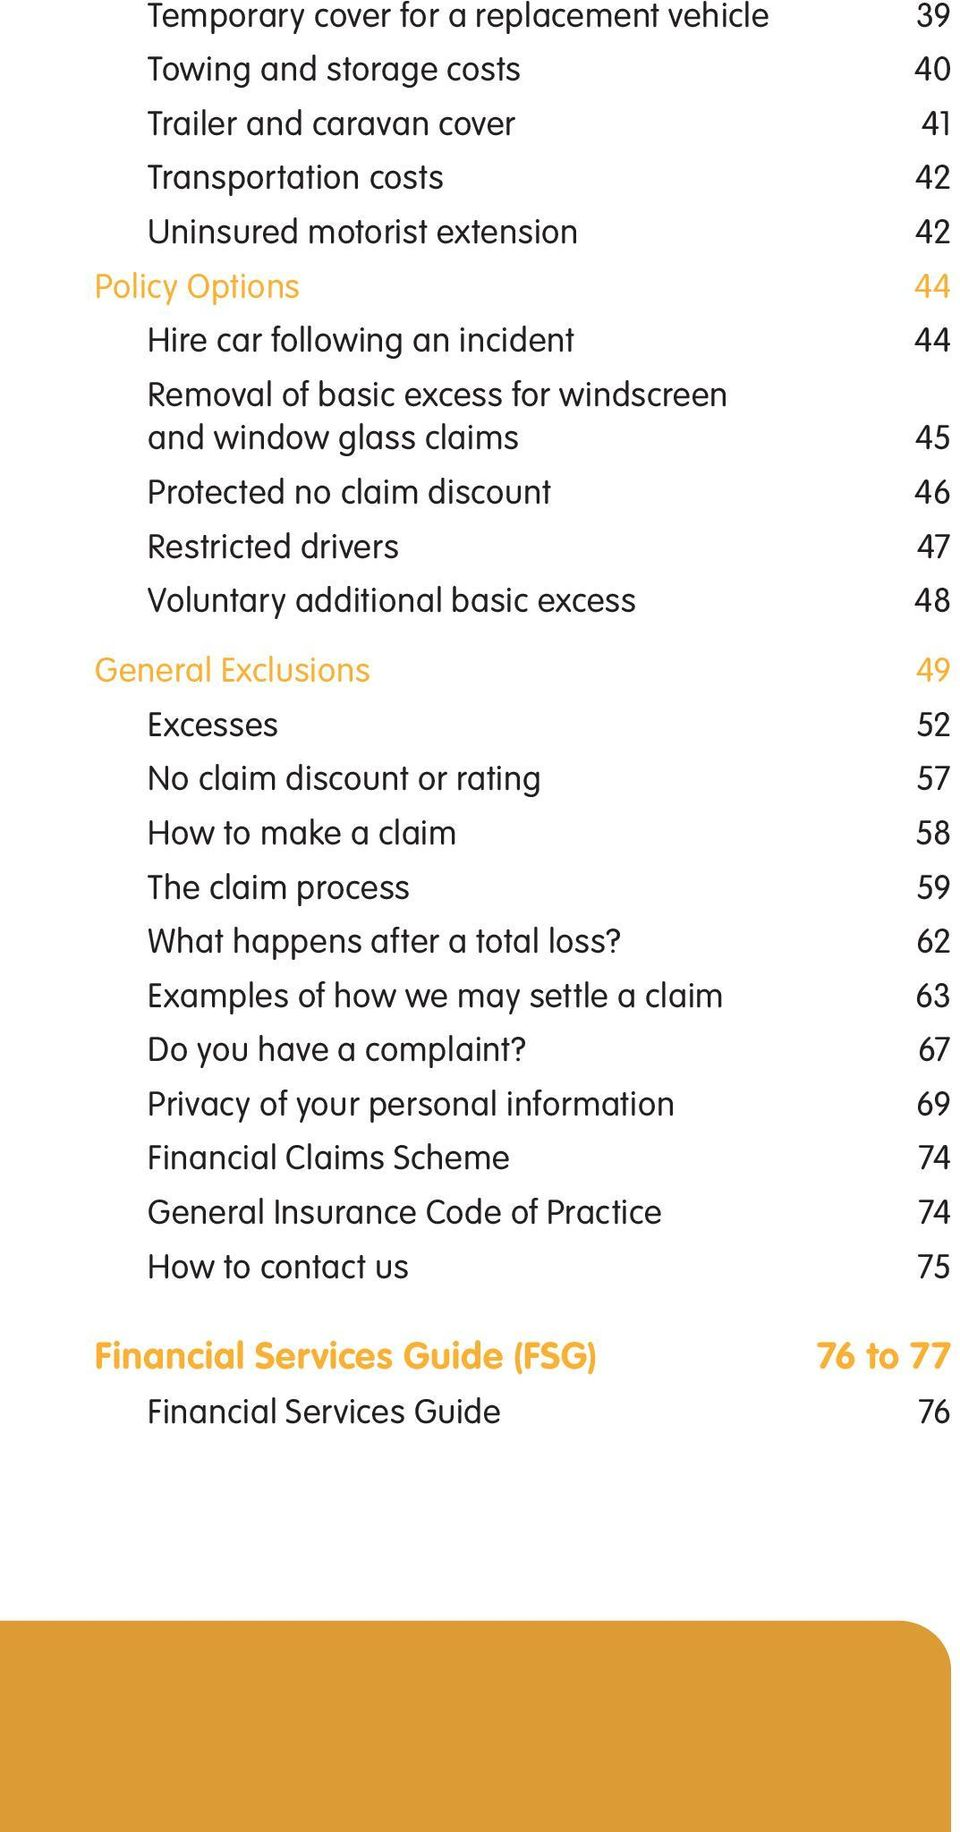 Exclusions 49 Excesses 52 No claim discount or rating 57 How to make a claim 58 The claim process 59 What happens after a total loss?